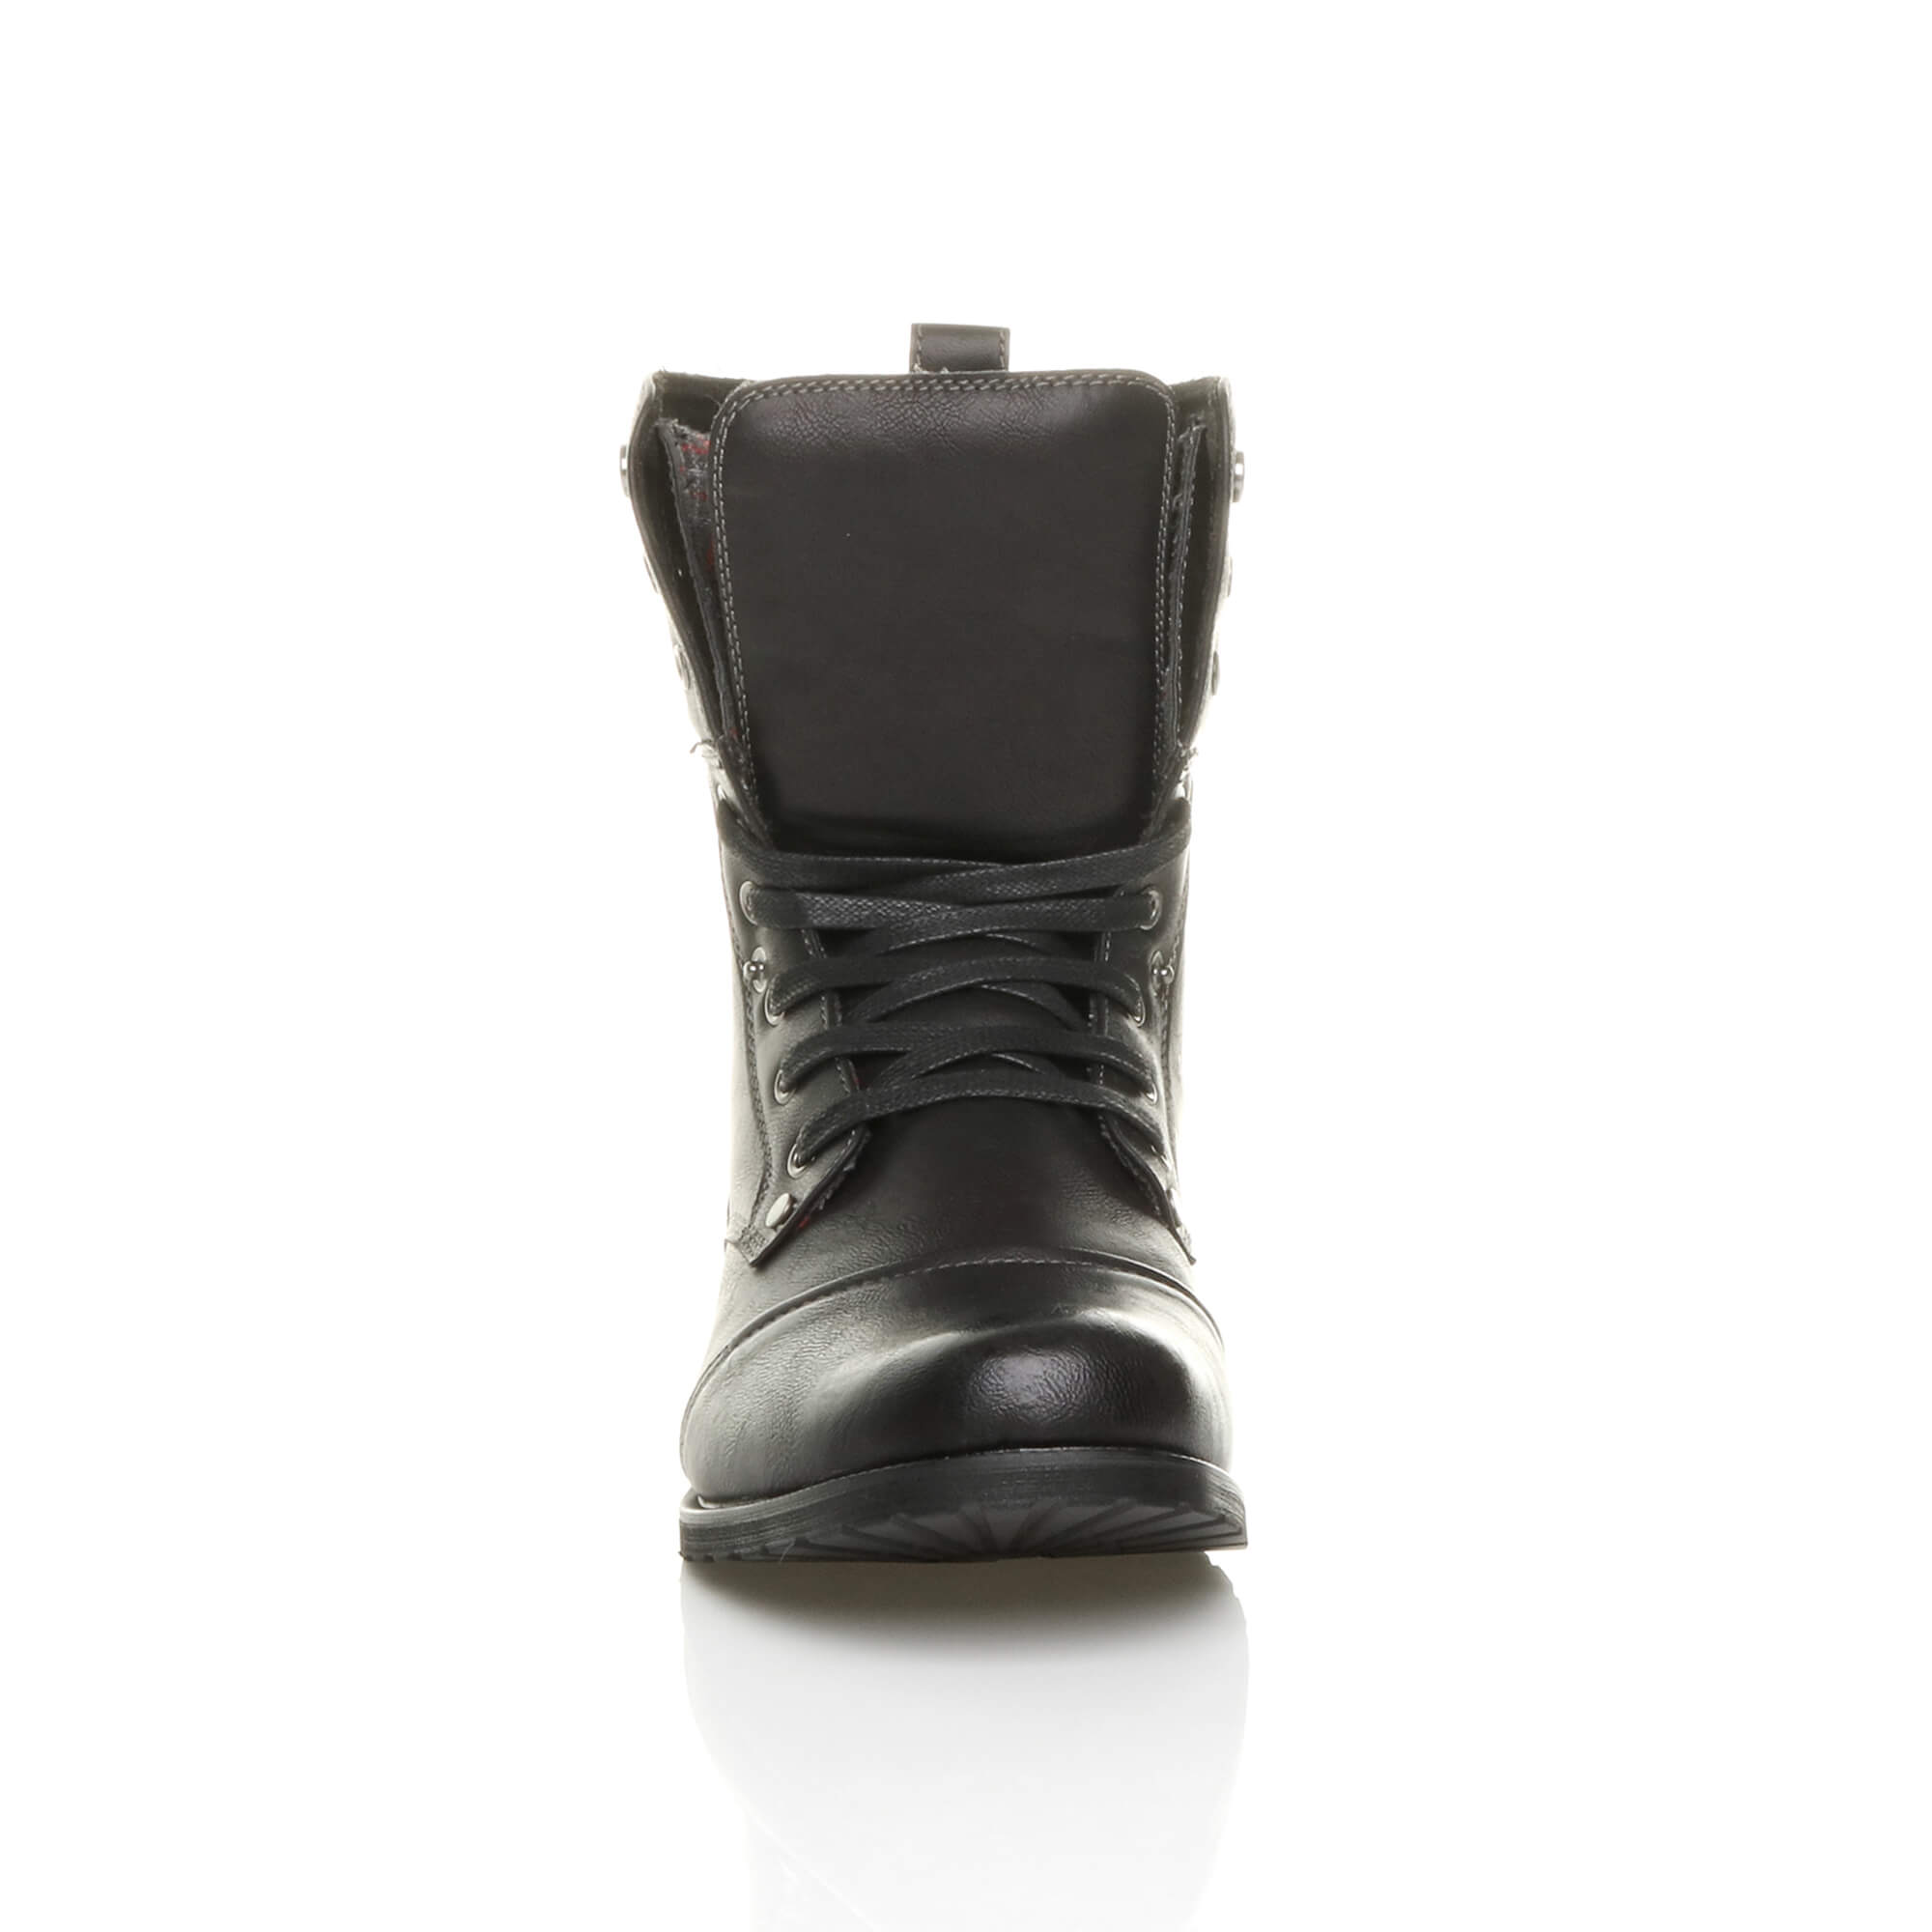 Mens-lace-up-low-heel-flat-fold-over-padded-cuff-military-ankle-boots-size miniatuur 7